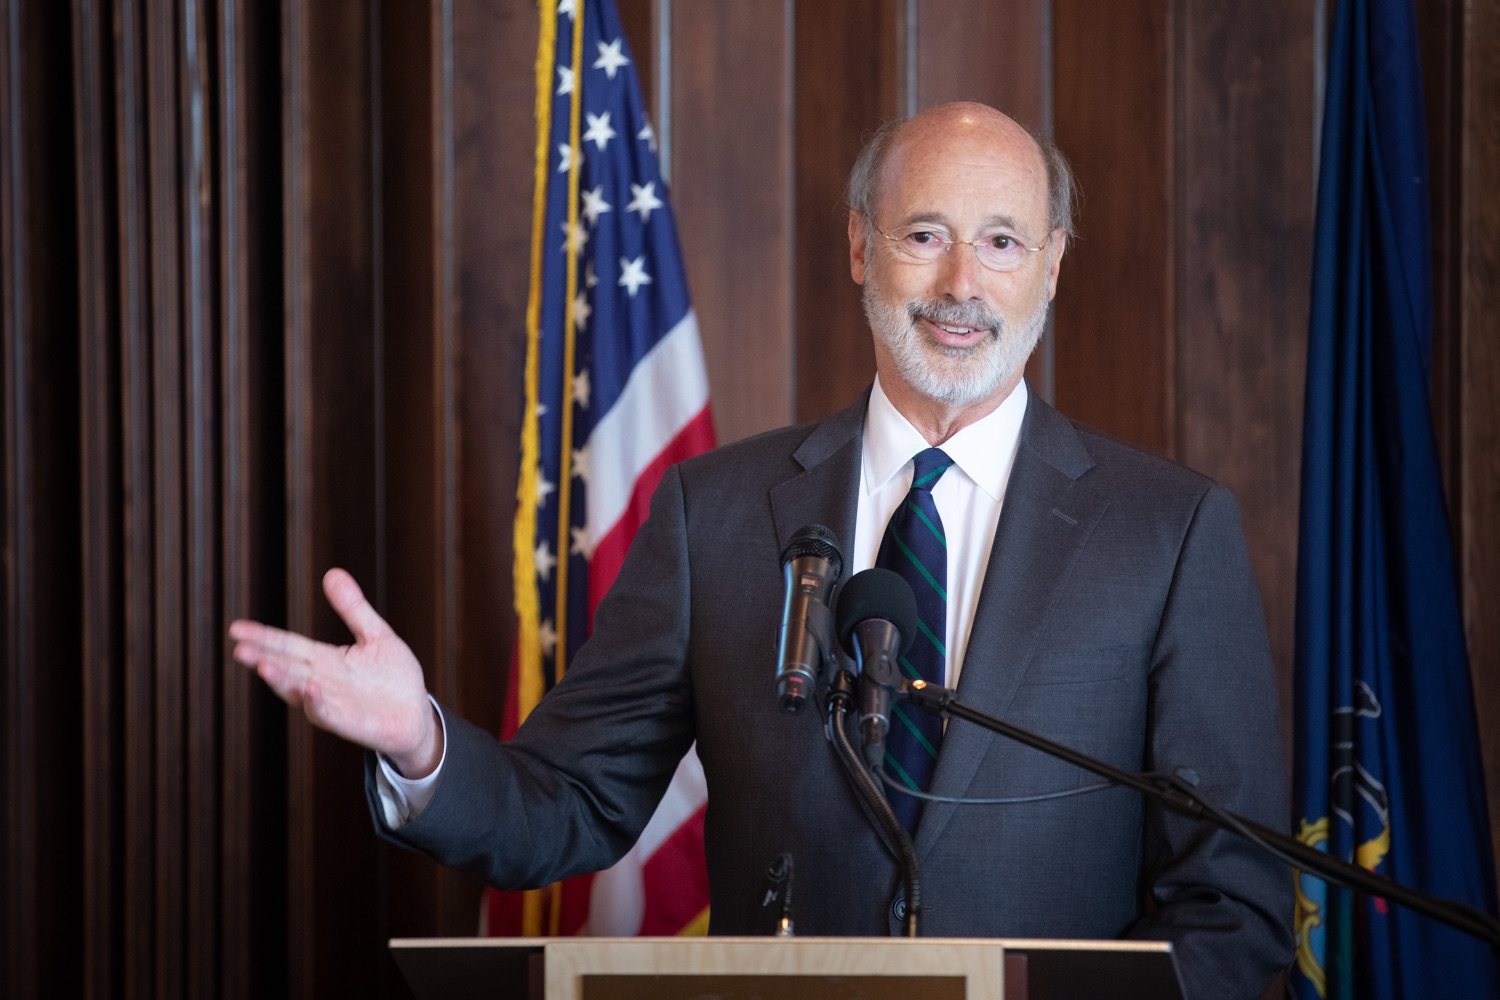 "<a href=""http://filesource.abacast.com/commonwealthofpa/photo/17467_gov_opioids_dz_001.JPG"" target=""_blank"">⇣ Download Photo<br></a>Boalsburg, PA  Governor Tom Wolf addressing the summit.  Governor Tom Wolf today kicked off his administrations first Opioid Command Center Opioid Summit: Think Globally, Act Locally, which brought together 200 individuals helping their communities fight the opioid crisis, including community organizations, non-profits, schools, health care workers, addiction and recovery specialists, and families affected by the opioid crisis.  Tuesday, October 1, 2019"